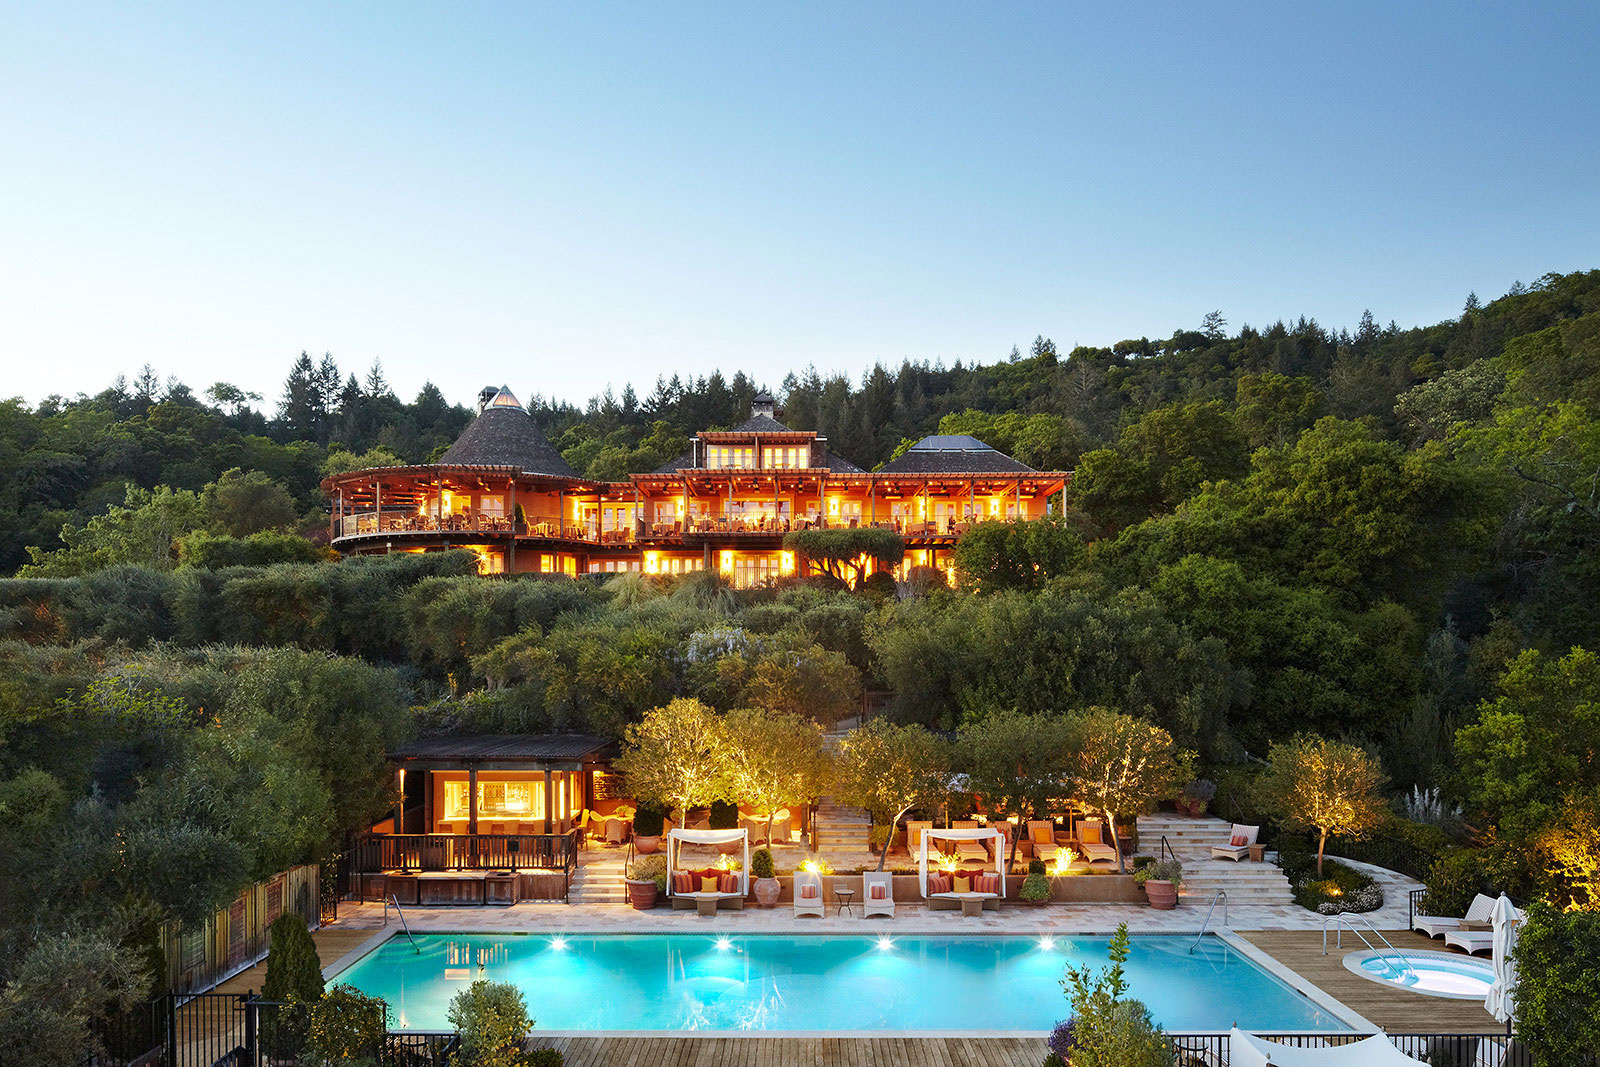 Architecture image of Auberge Du Soleil, Napa Valley, CA | Trinette + Chris Photographers